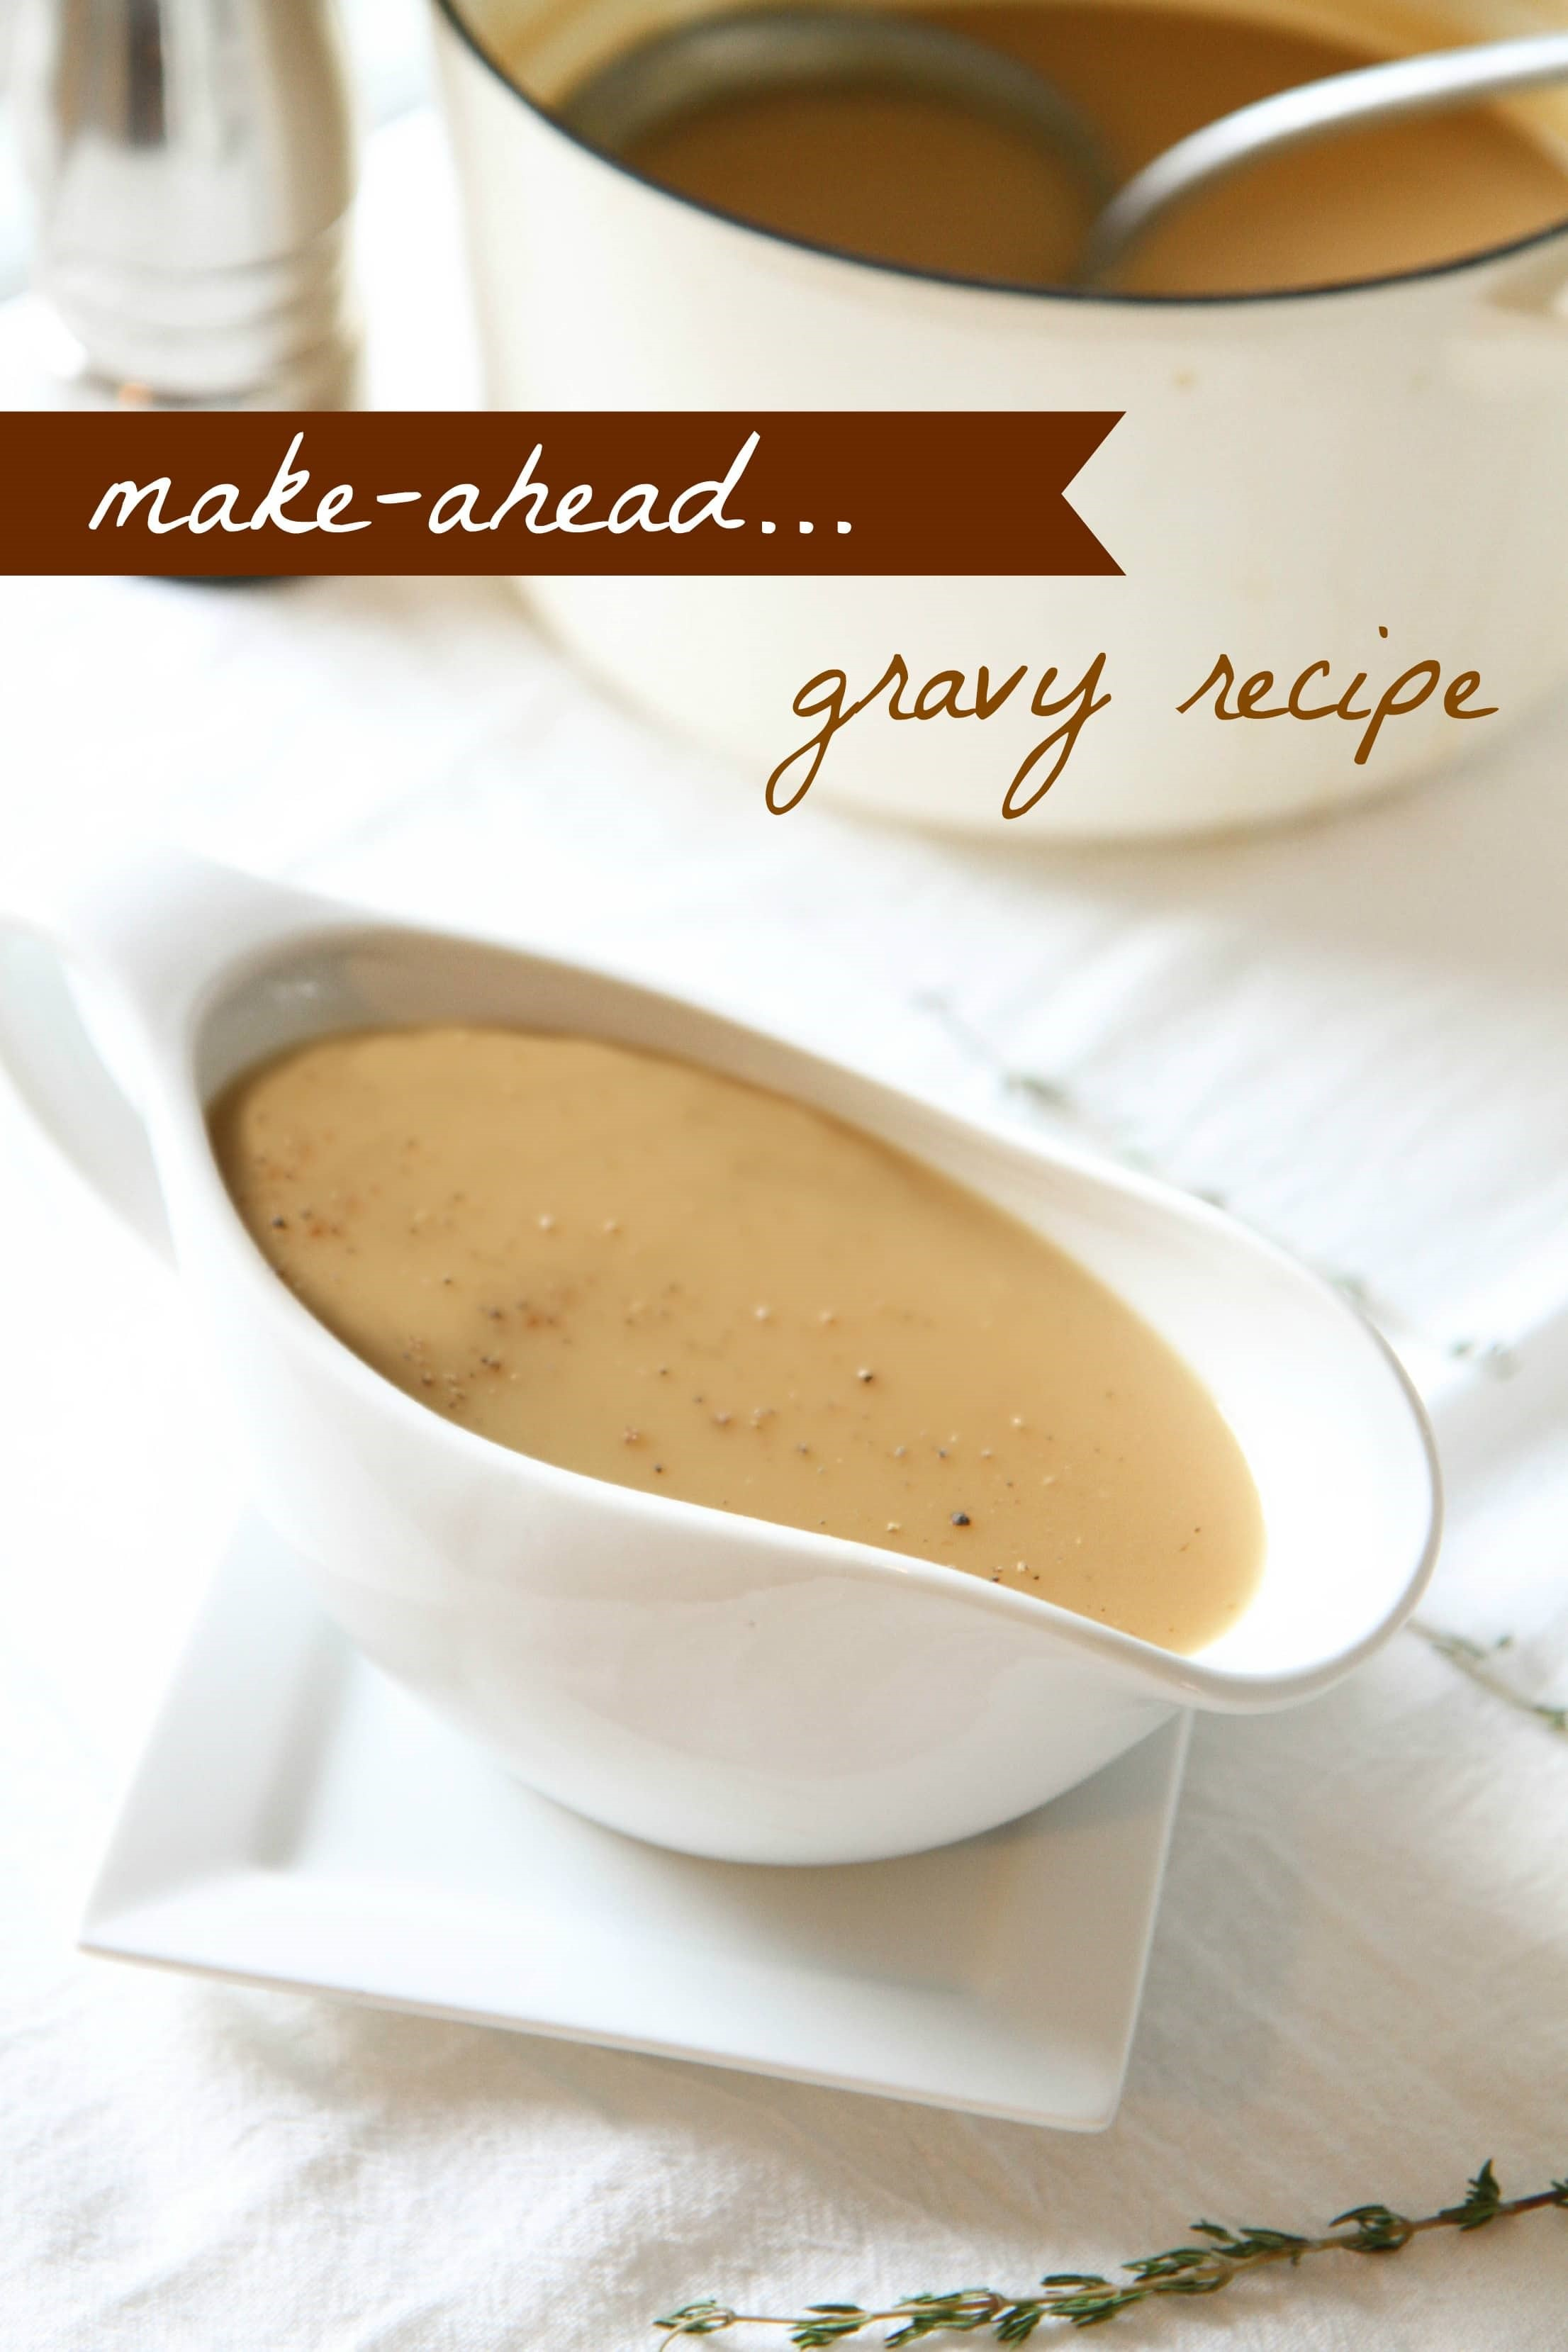 Make Ahead Gravy Recipe from MomAdvice.com.